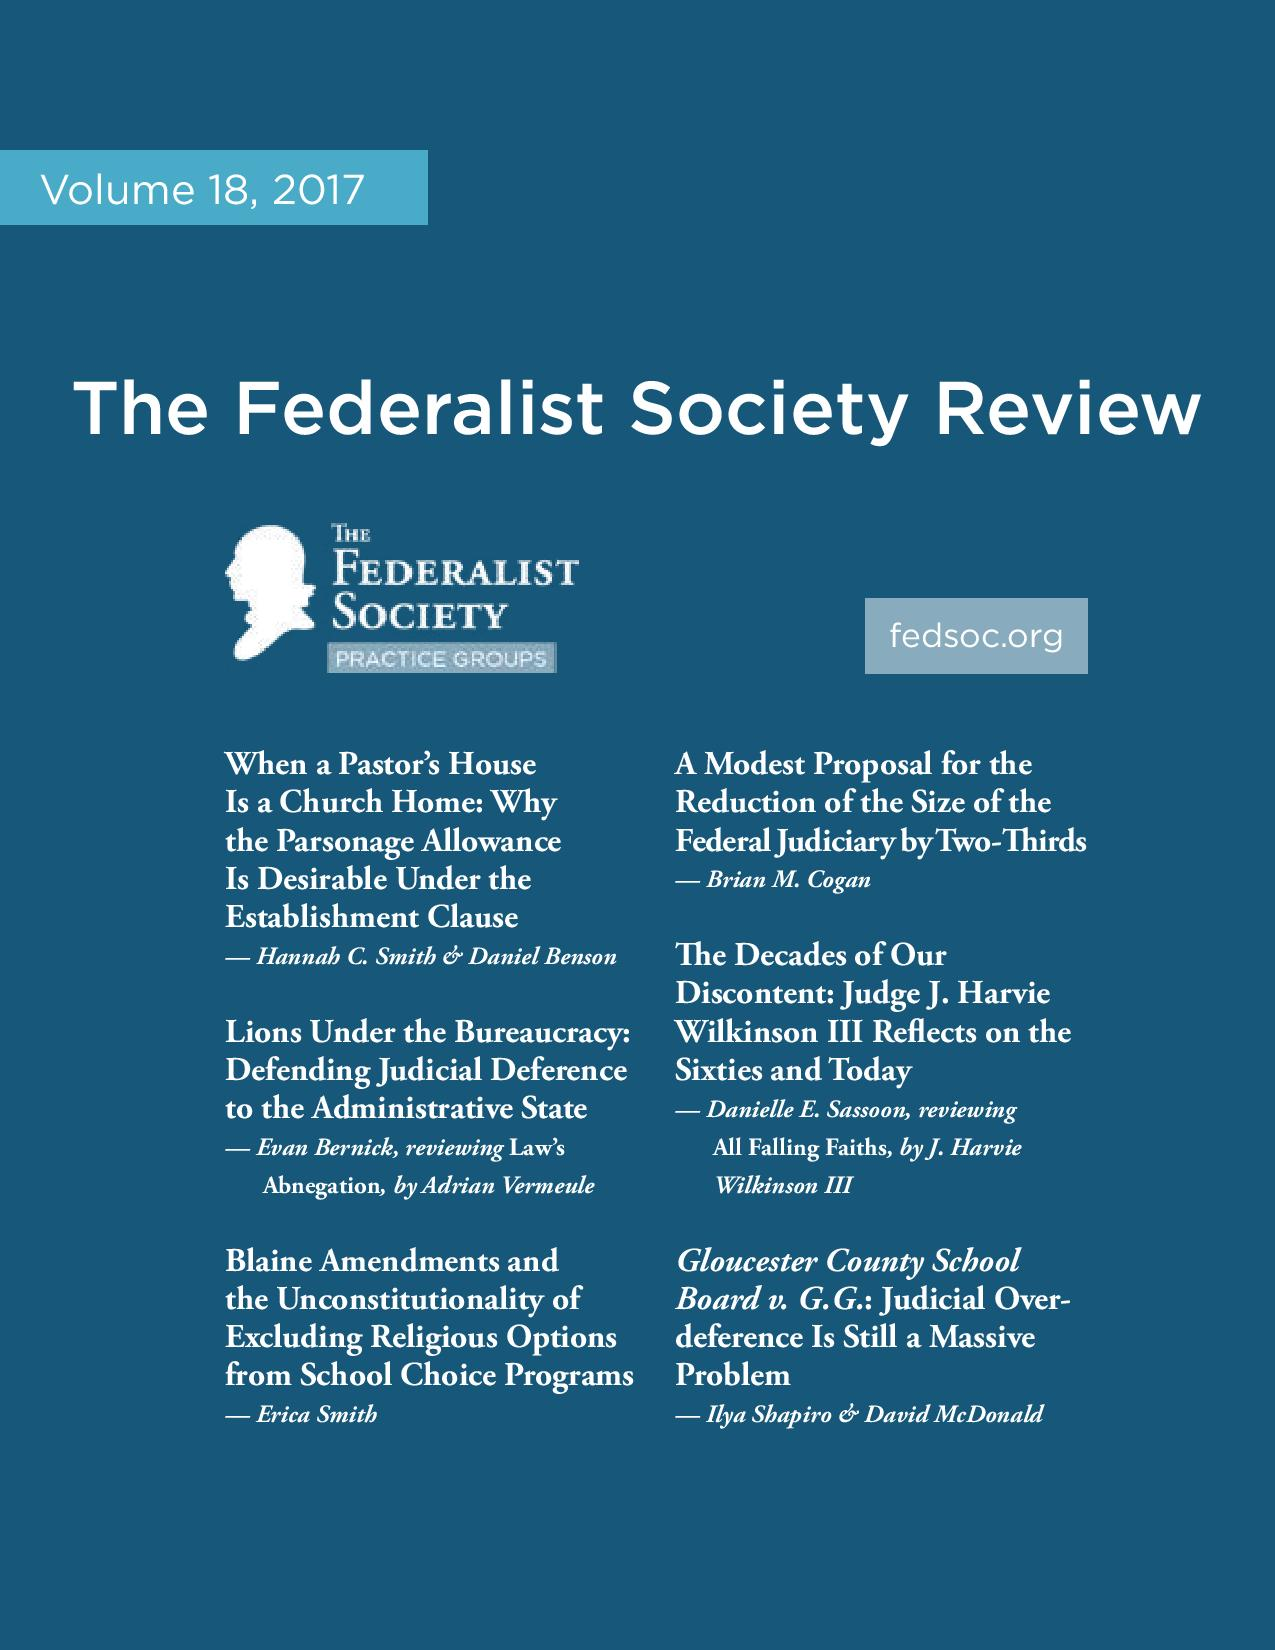 Federalist Society Review, Volume 18